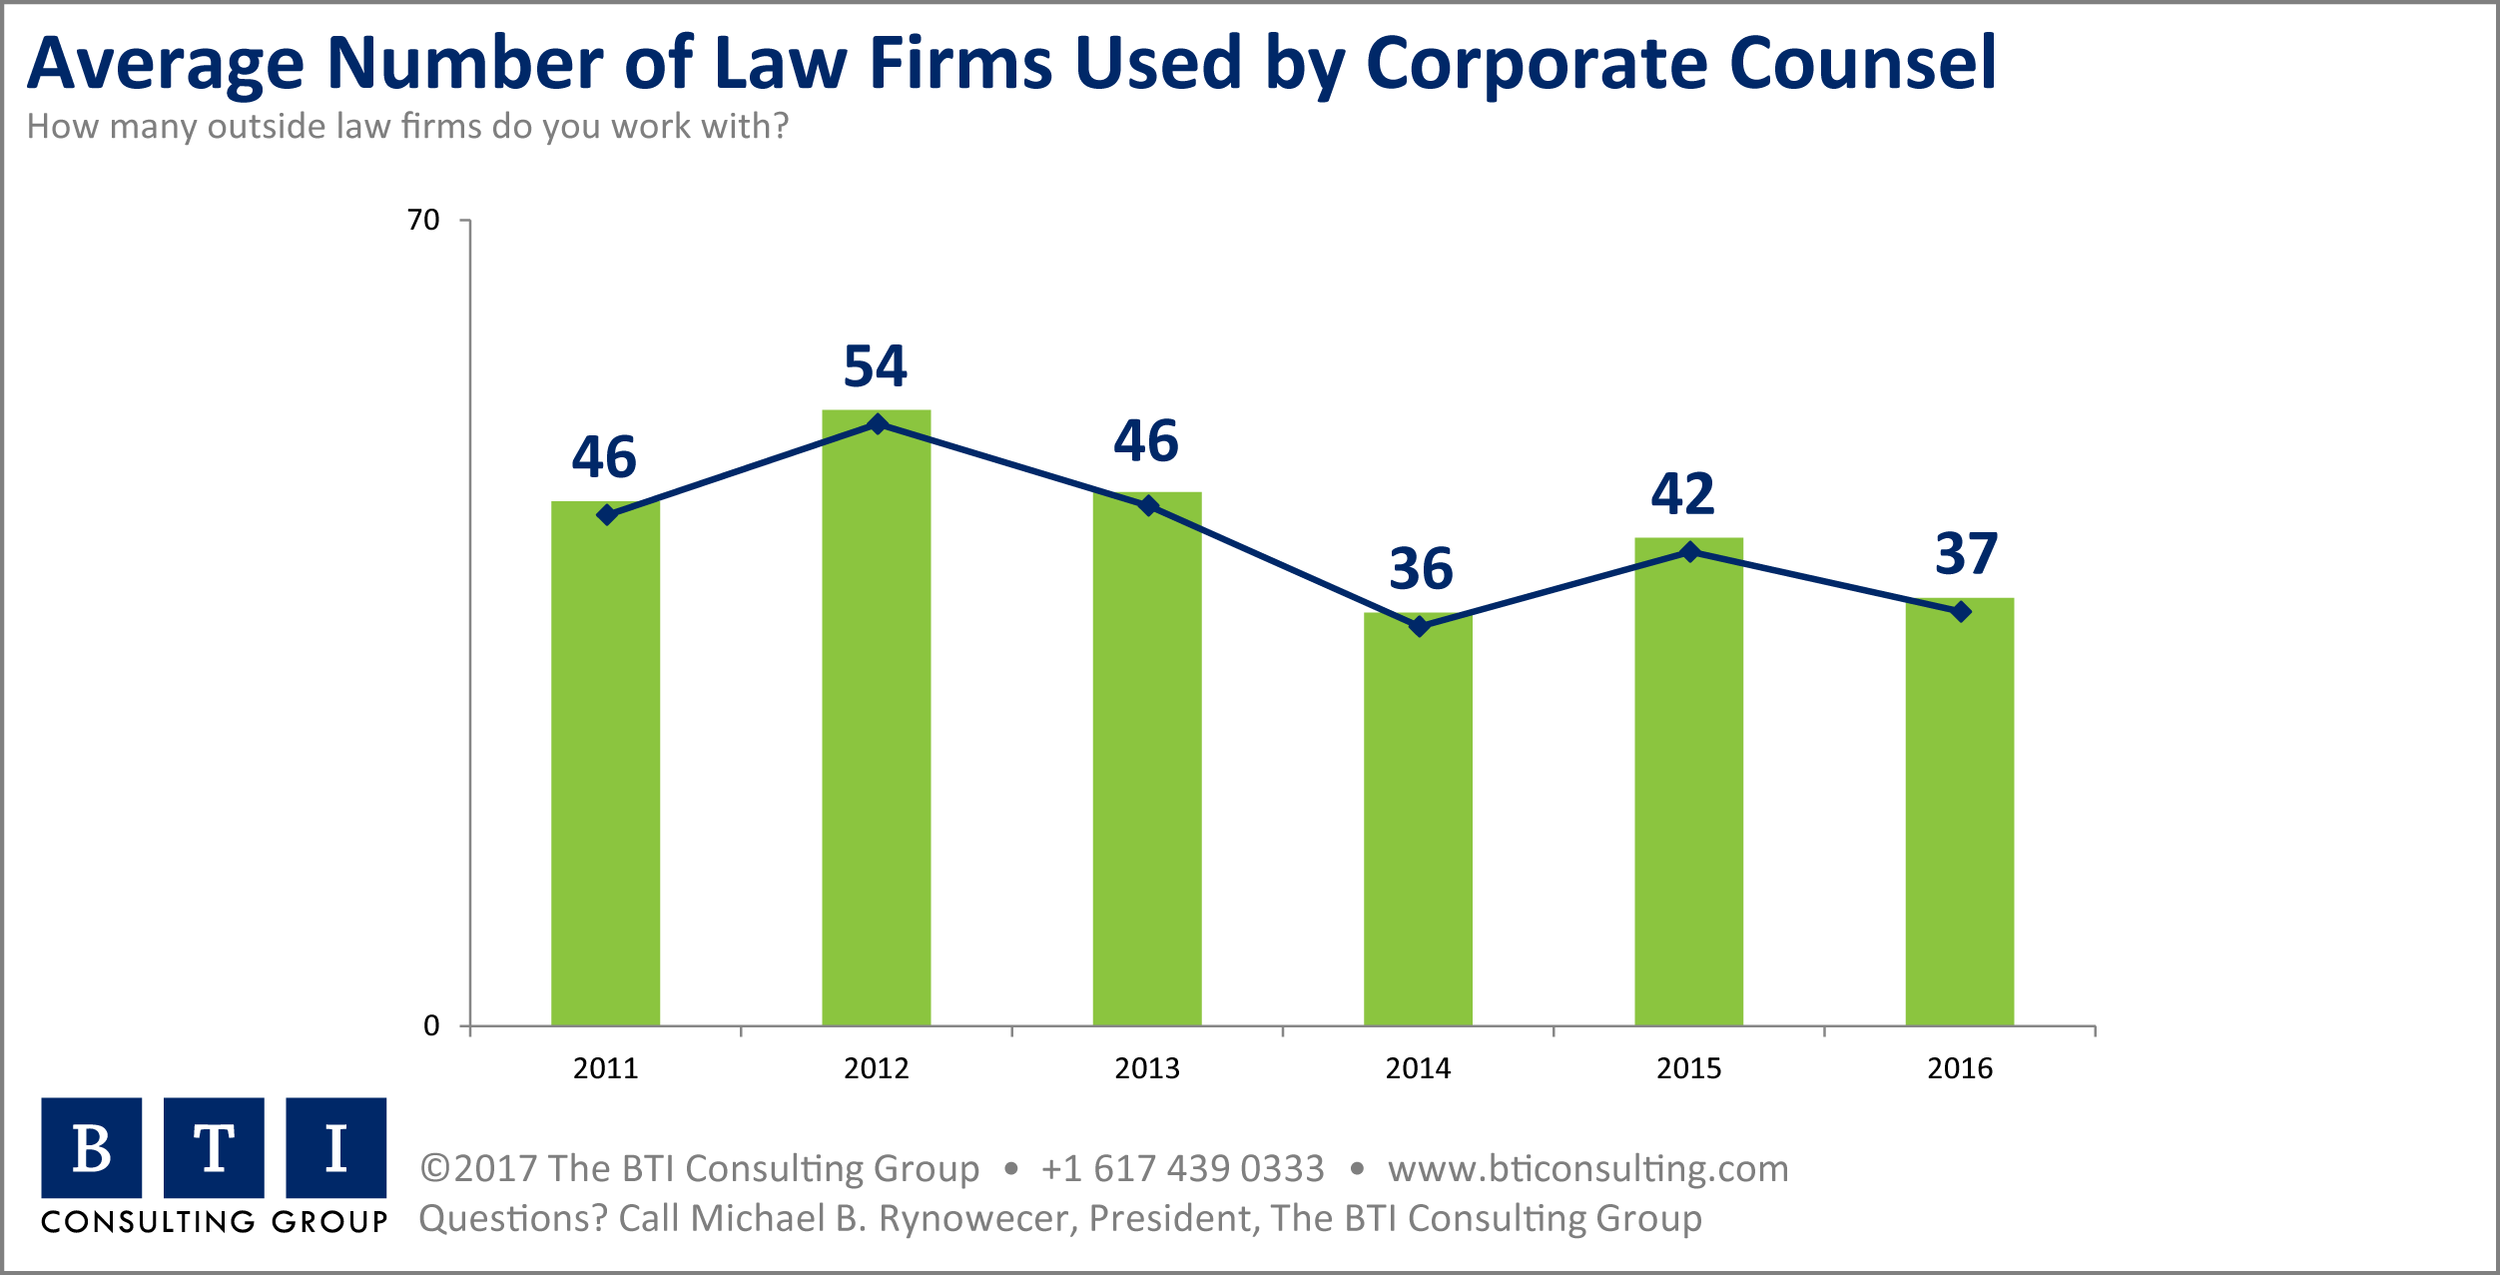 BTI Average Number of Law Firms Used 2017.png